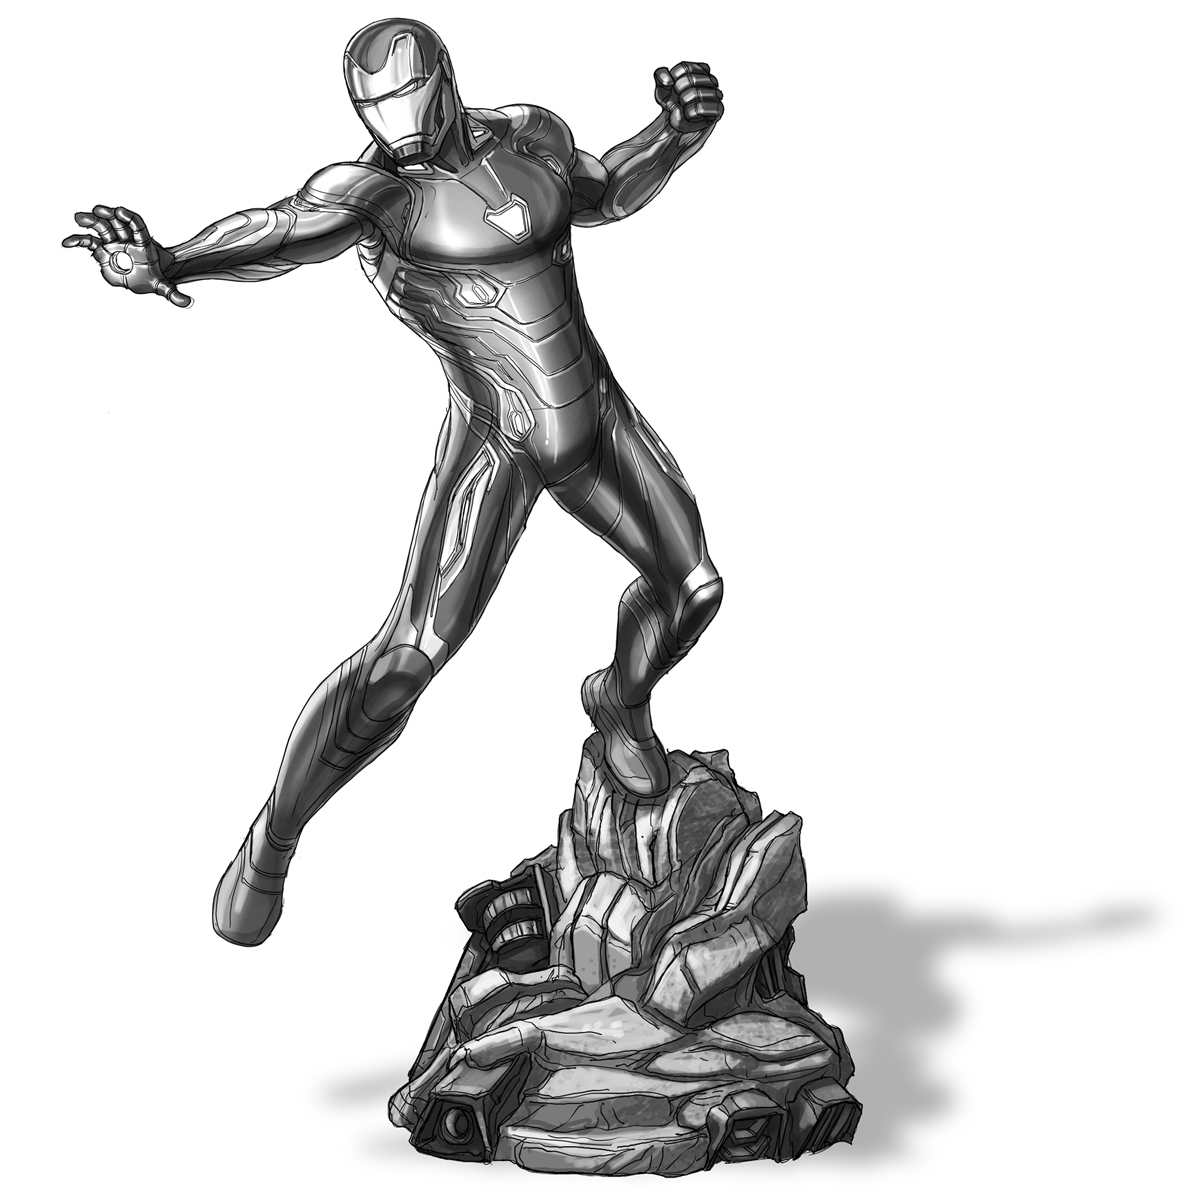 ironMan_frontPose_v2